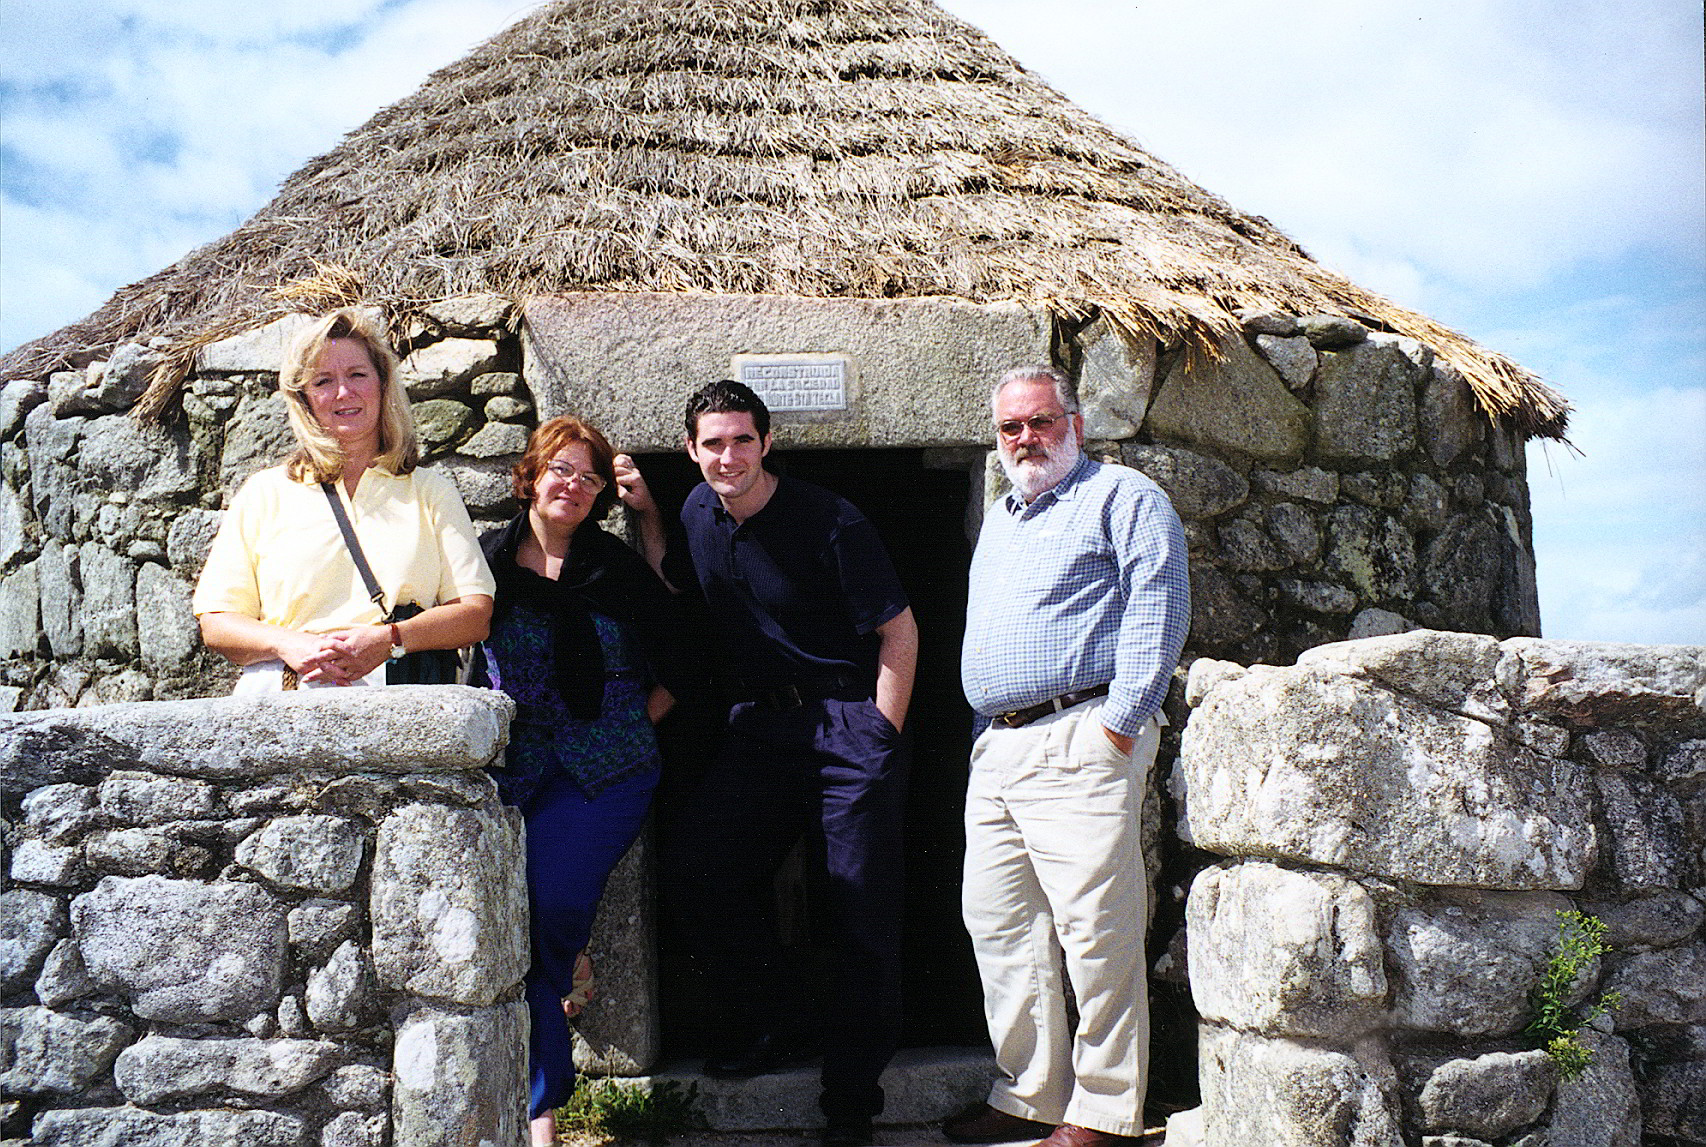 Group photo at the huts of Monte Santa Tecla Celtic Hill-fort, A Guarda